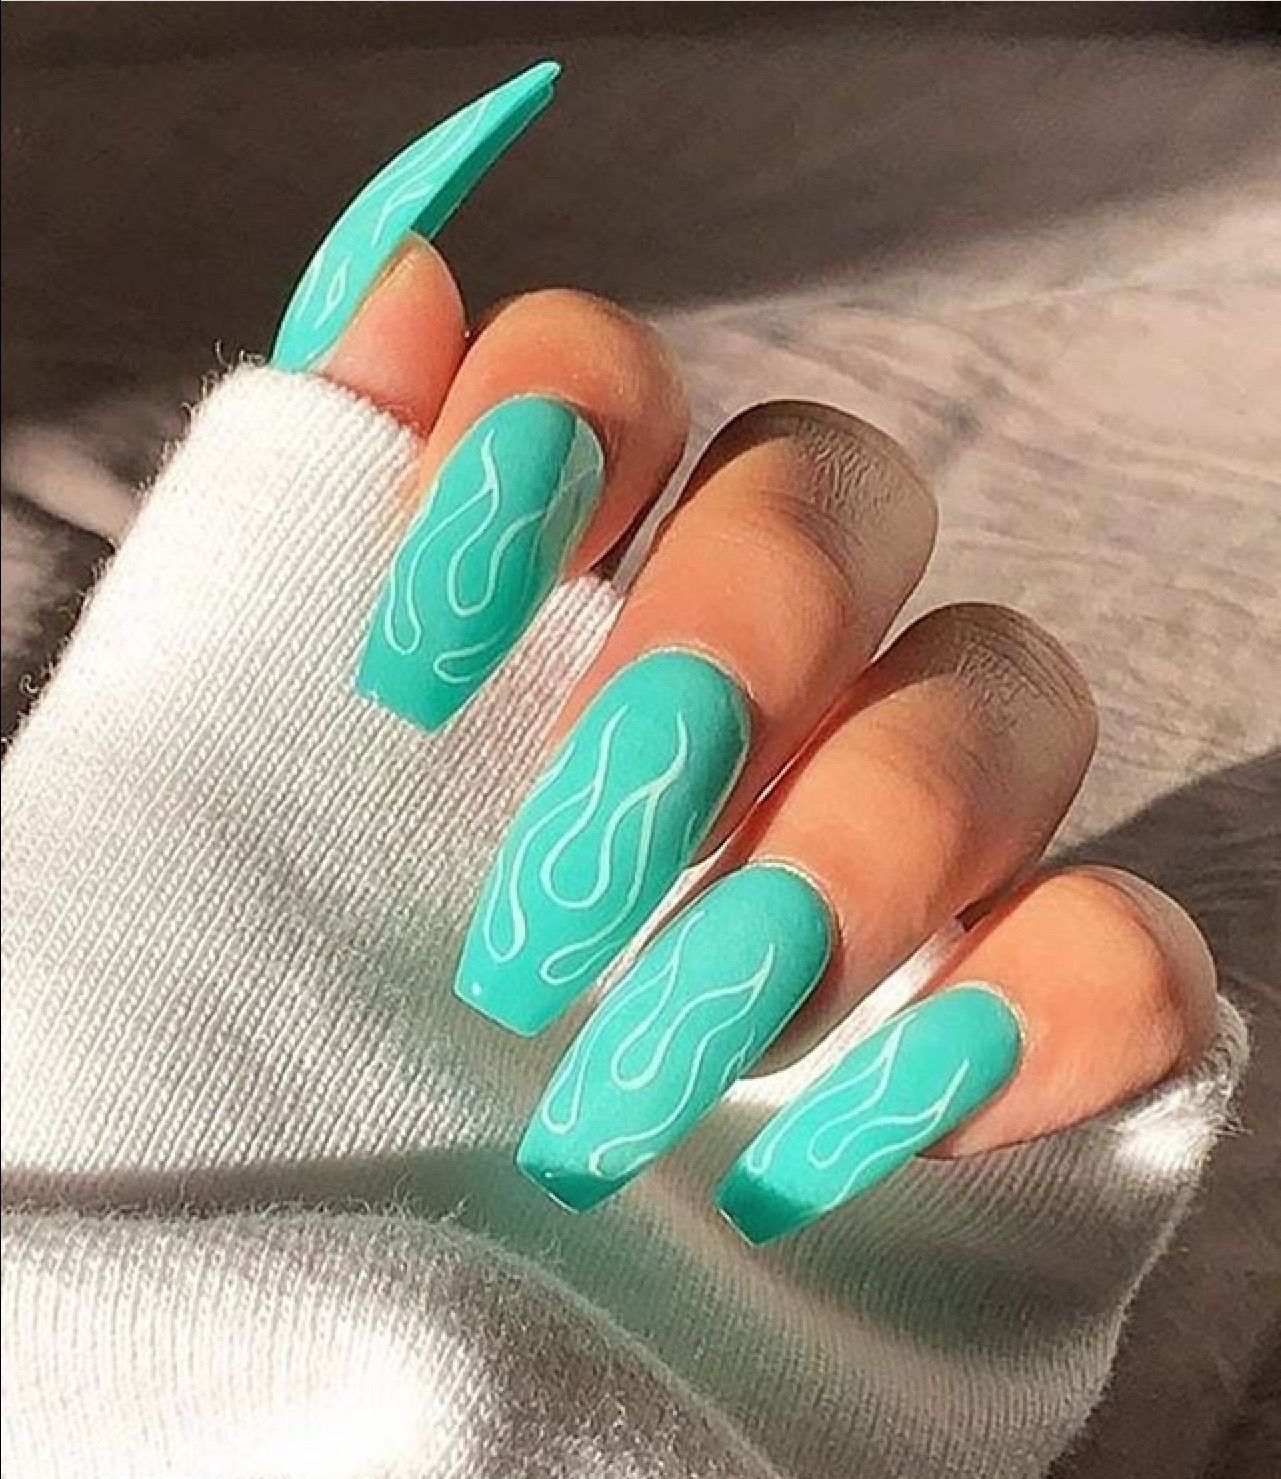 Teal Coffin Nails With Simple White Fire Design Pinterest Cassiebryan99 Coffin Nails Designs Pretty Gel Nails Nail Designs Summer